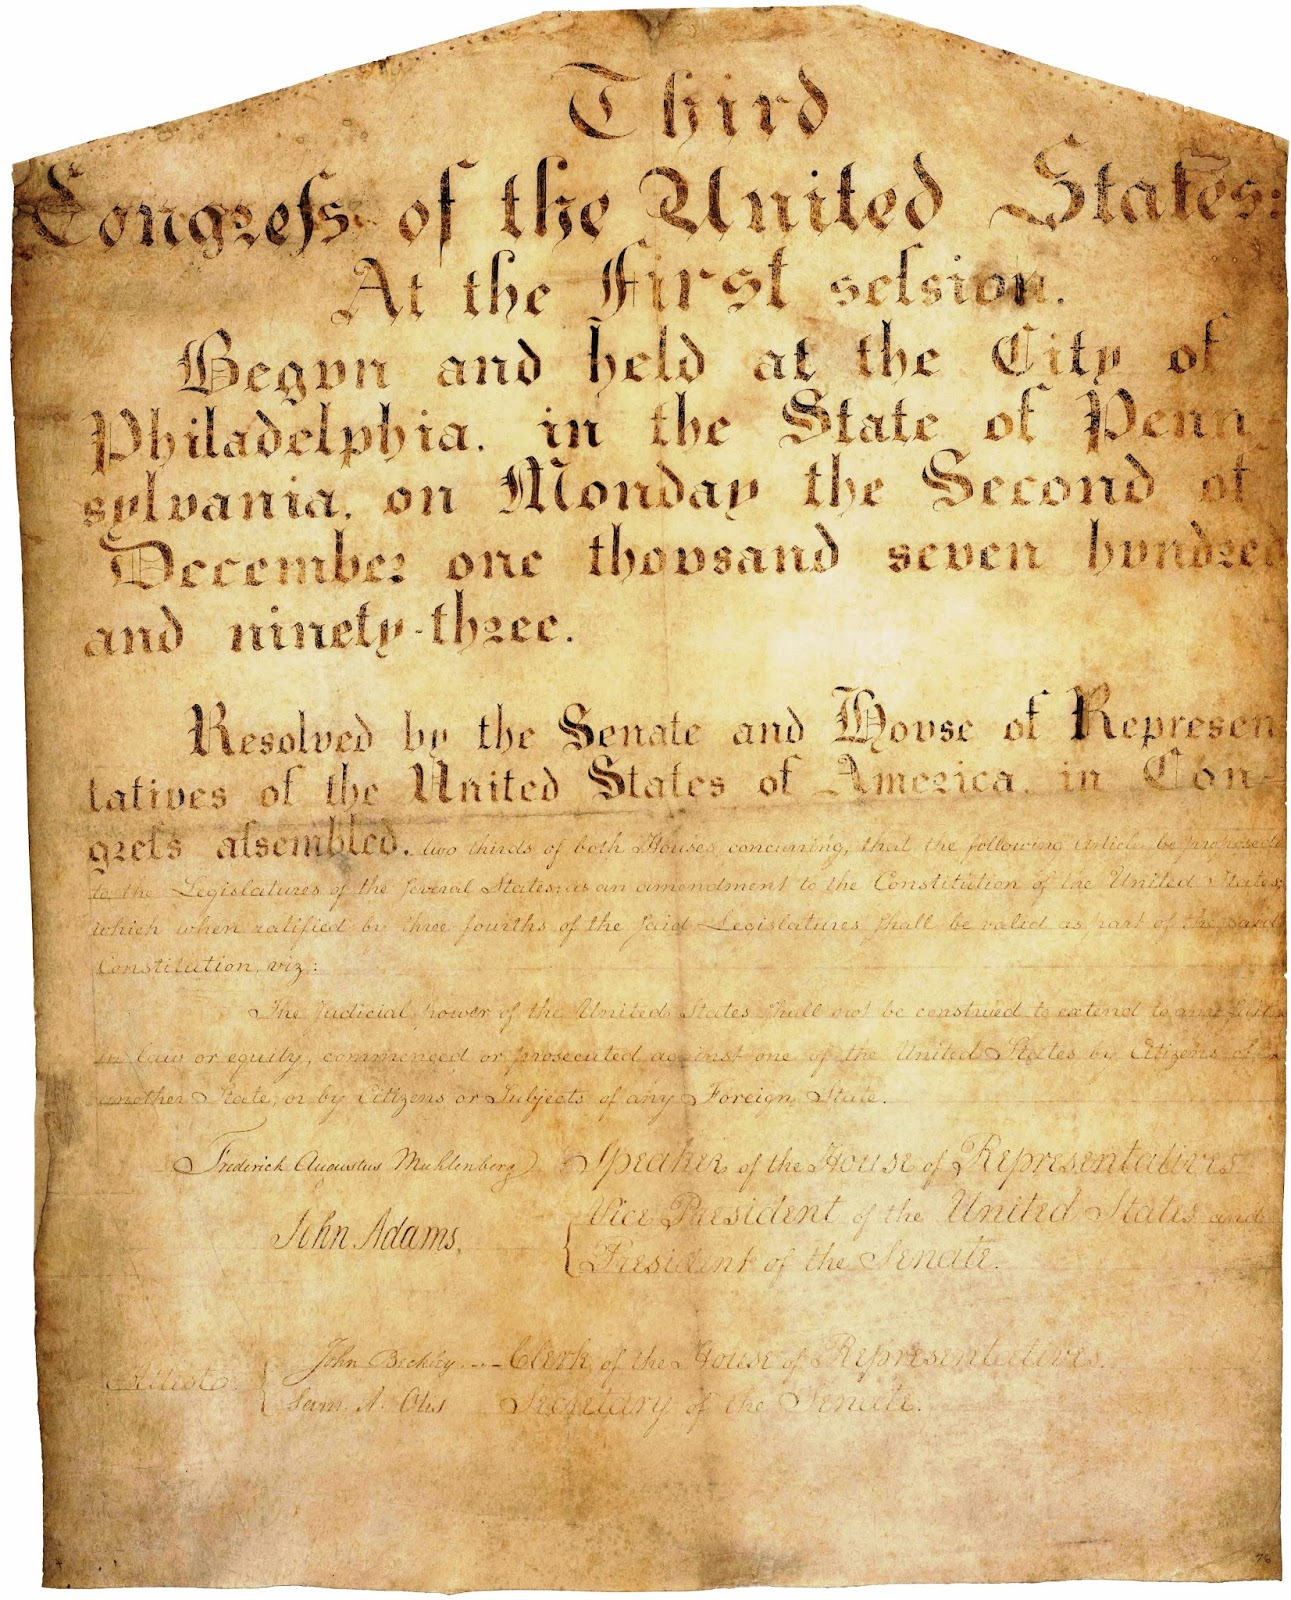 amendments of the united states constitution Articles in addition to, and amendment of, the constitution of the united states of  america, proposed by congress, and ratified by the several states, pursuant to.